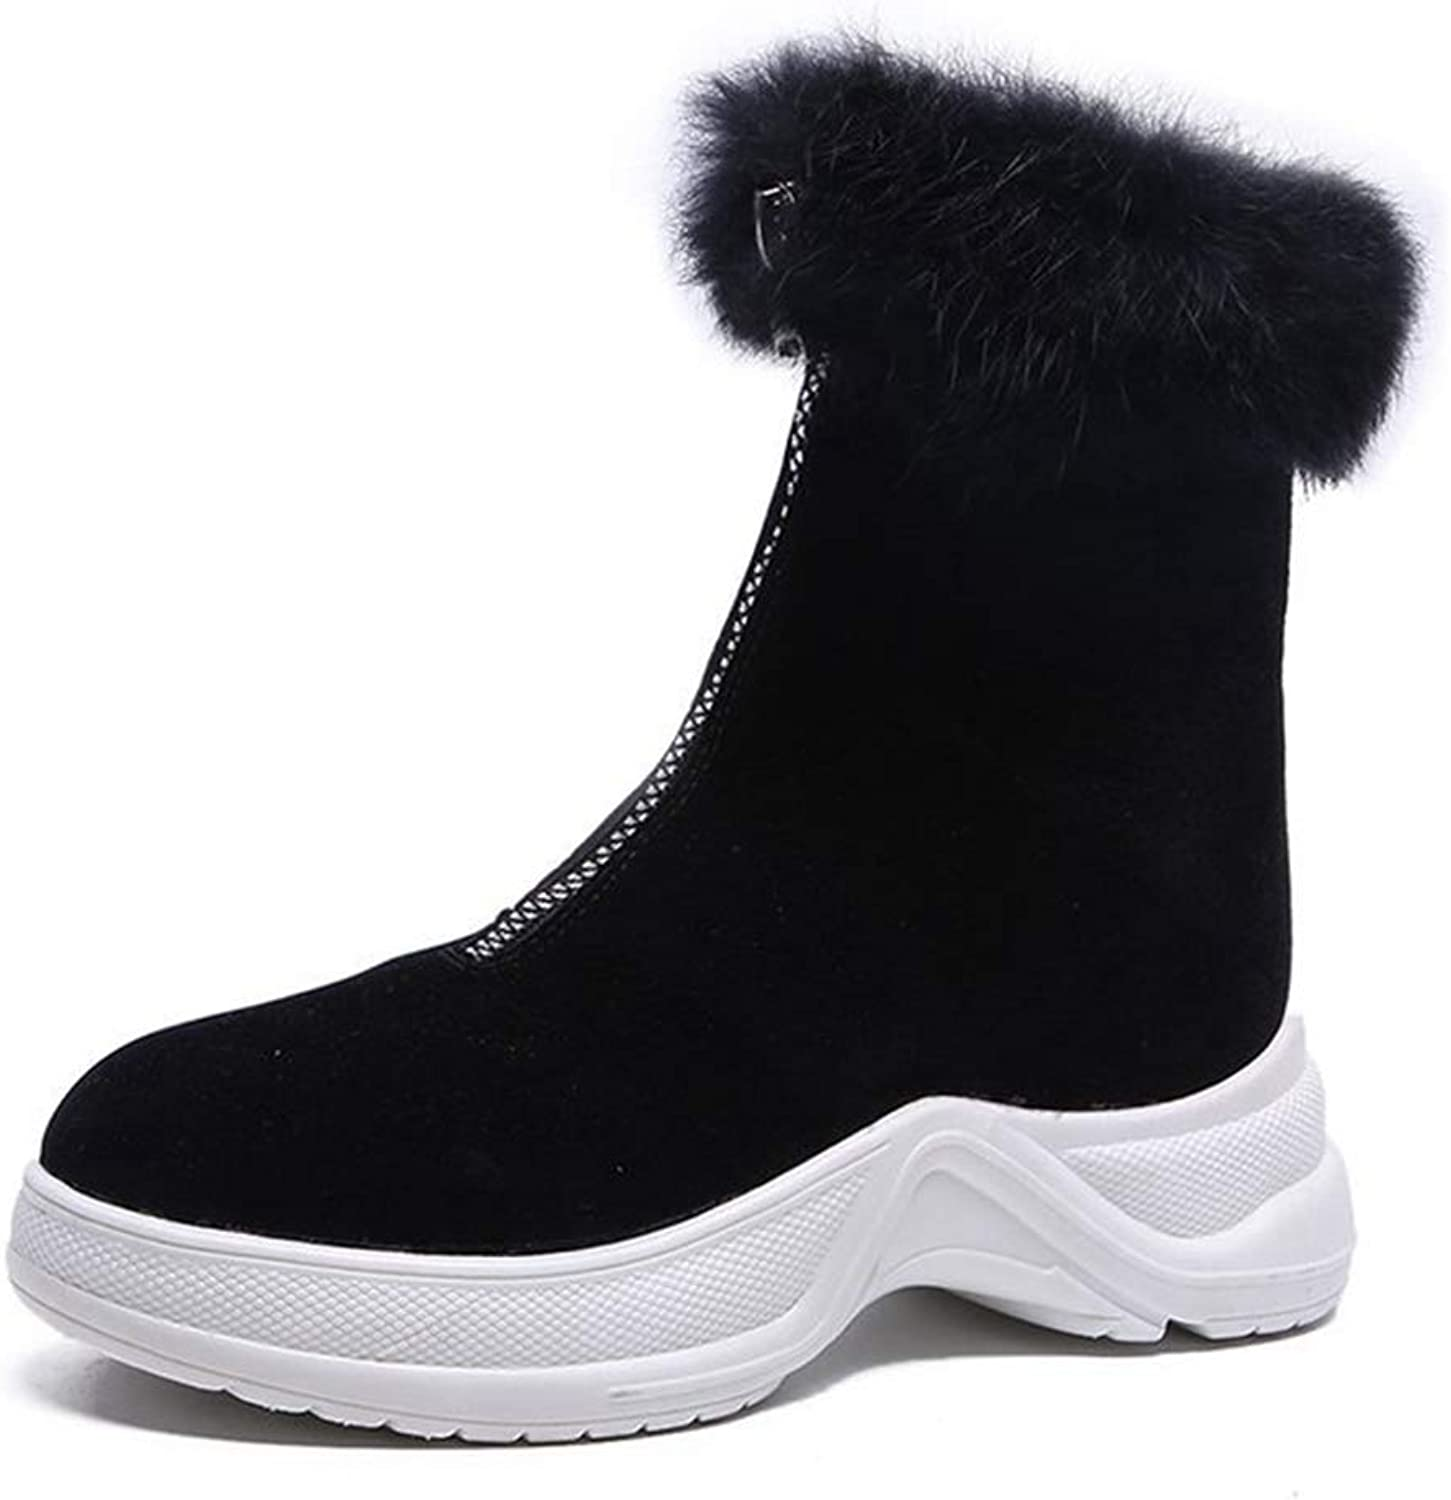 CYBLING Women's Winter Short Boots Round Toe Suede Low Heel Faux Fur Warm Ankle Snow Booties